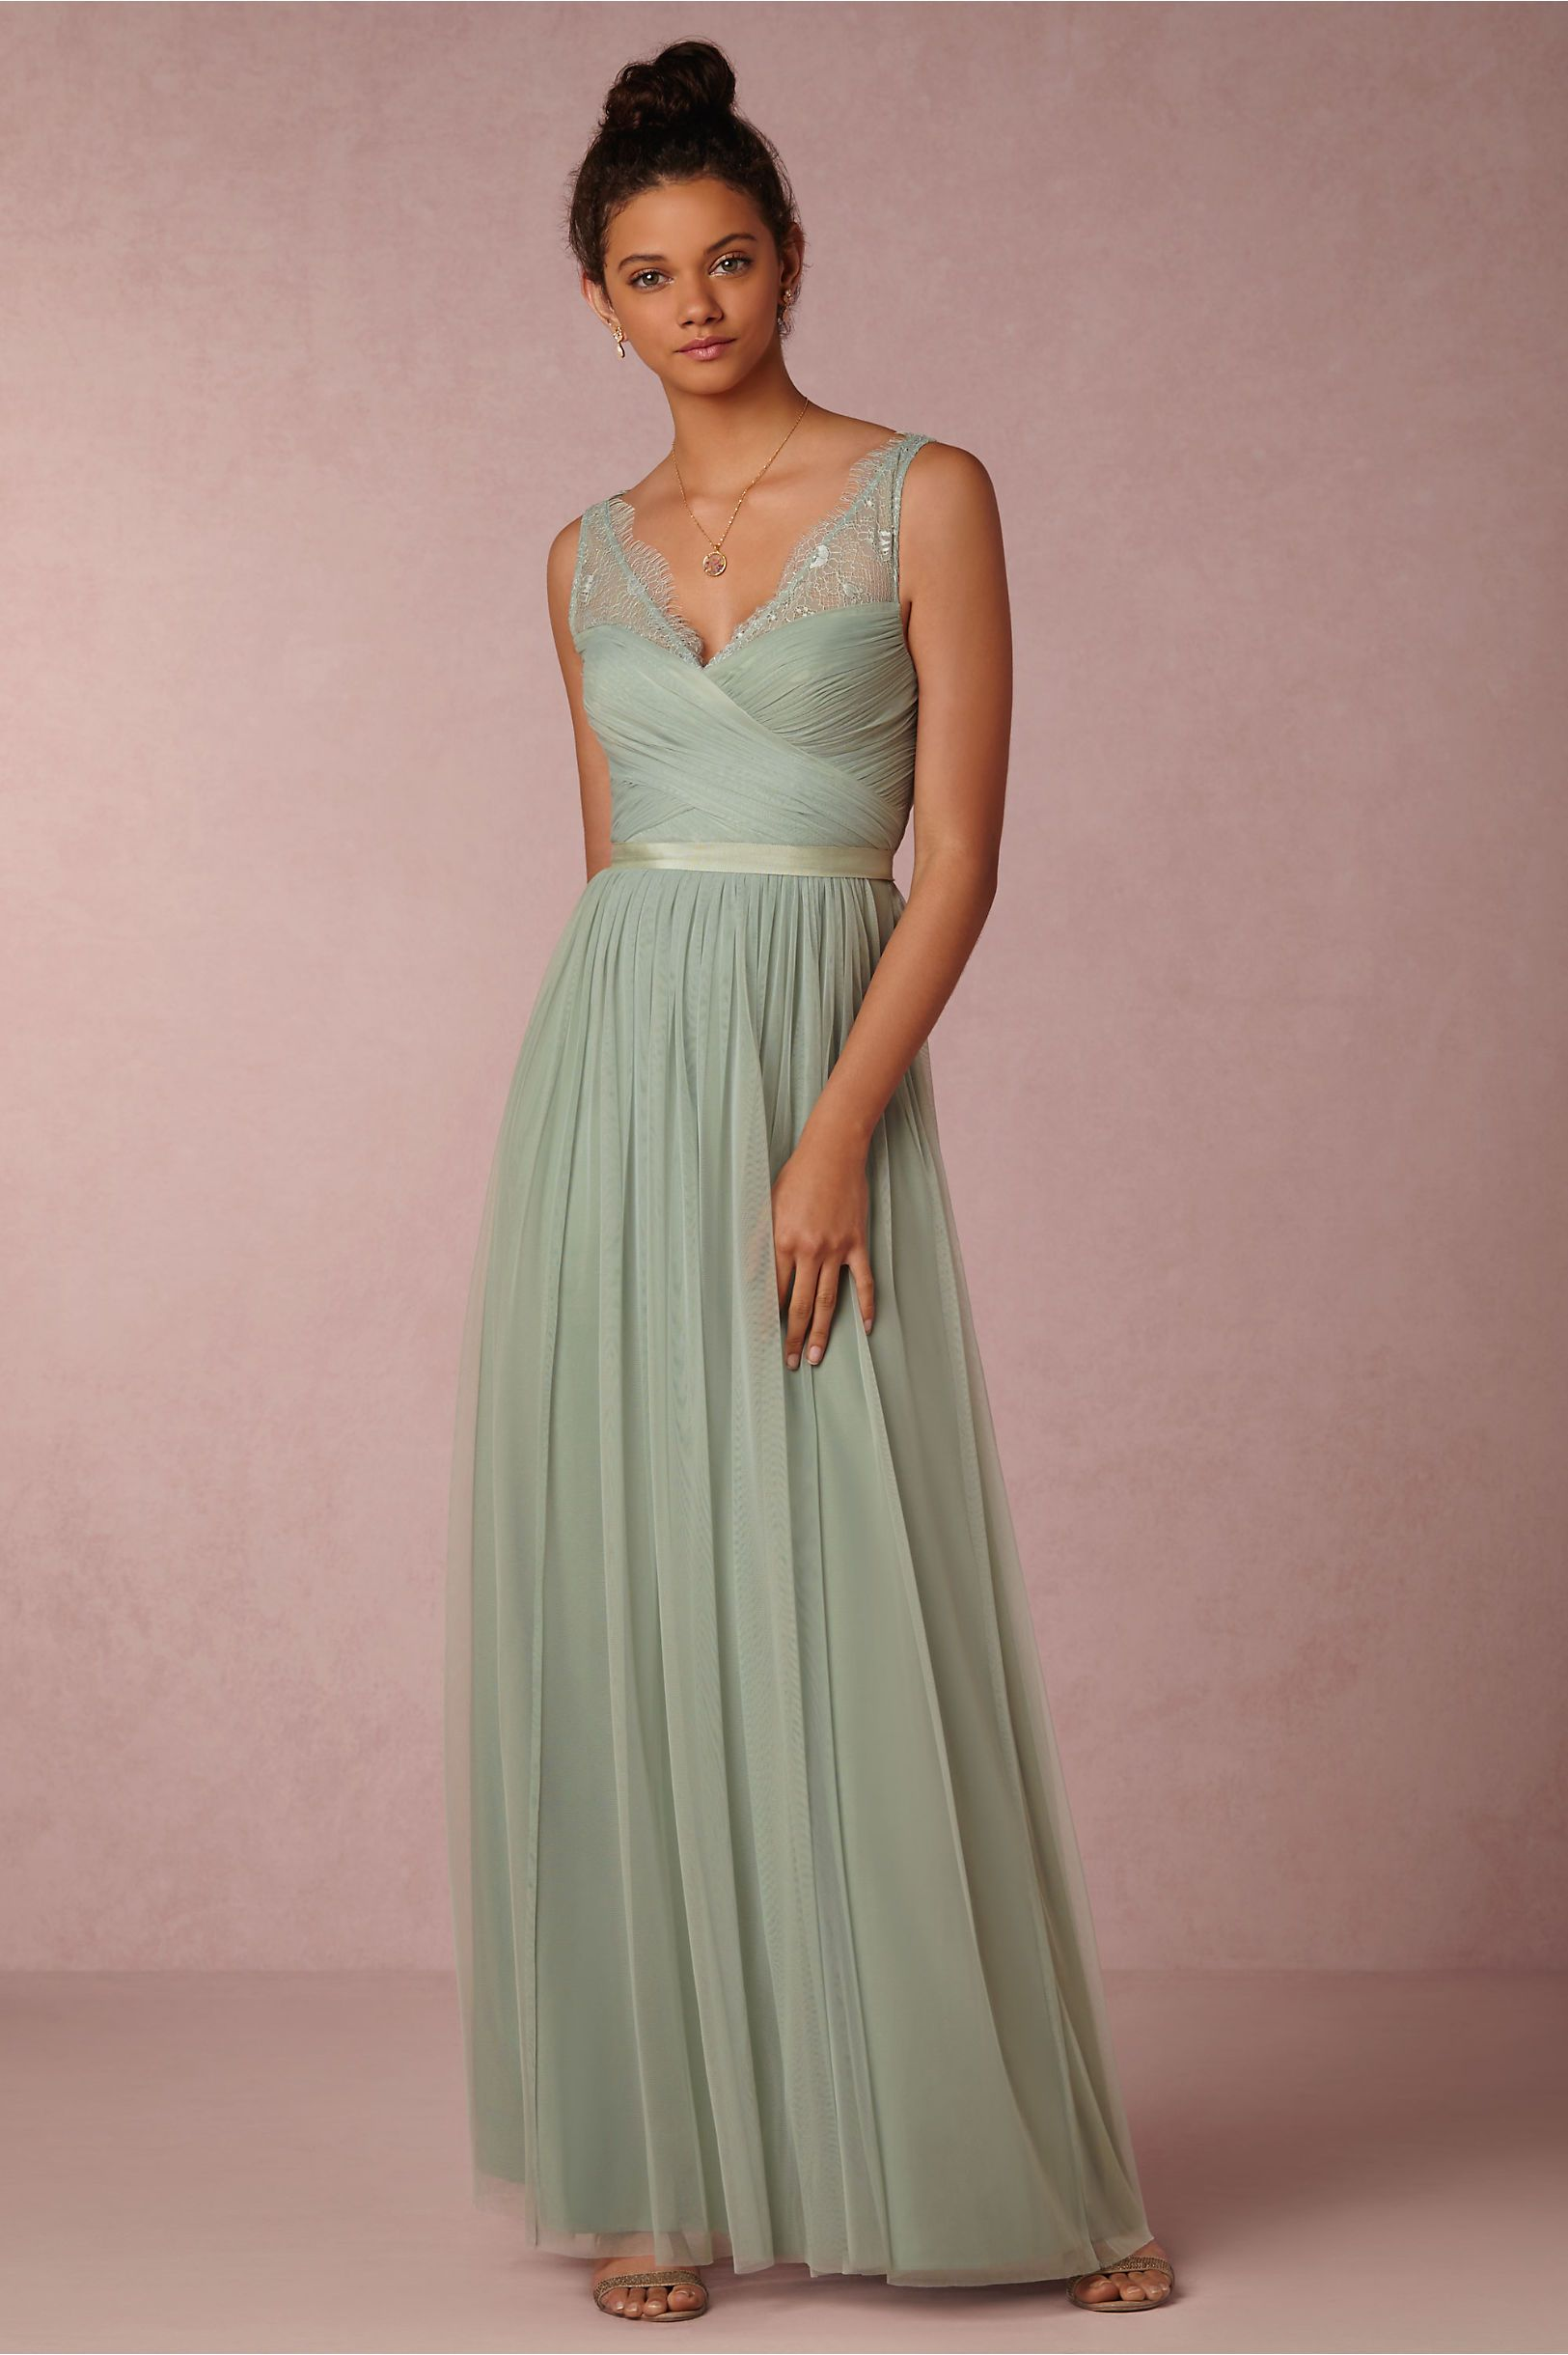 Bhldn fleur dress in bridesmaids view all dresses at bhldn blue mint green bridesmaid dresses long formal african lace wedding guest dress floor length v neck sash tulle greek style ombrellifo Choice Image